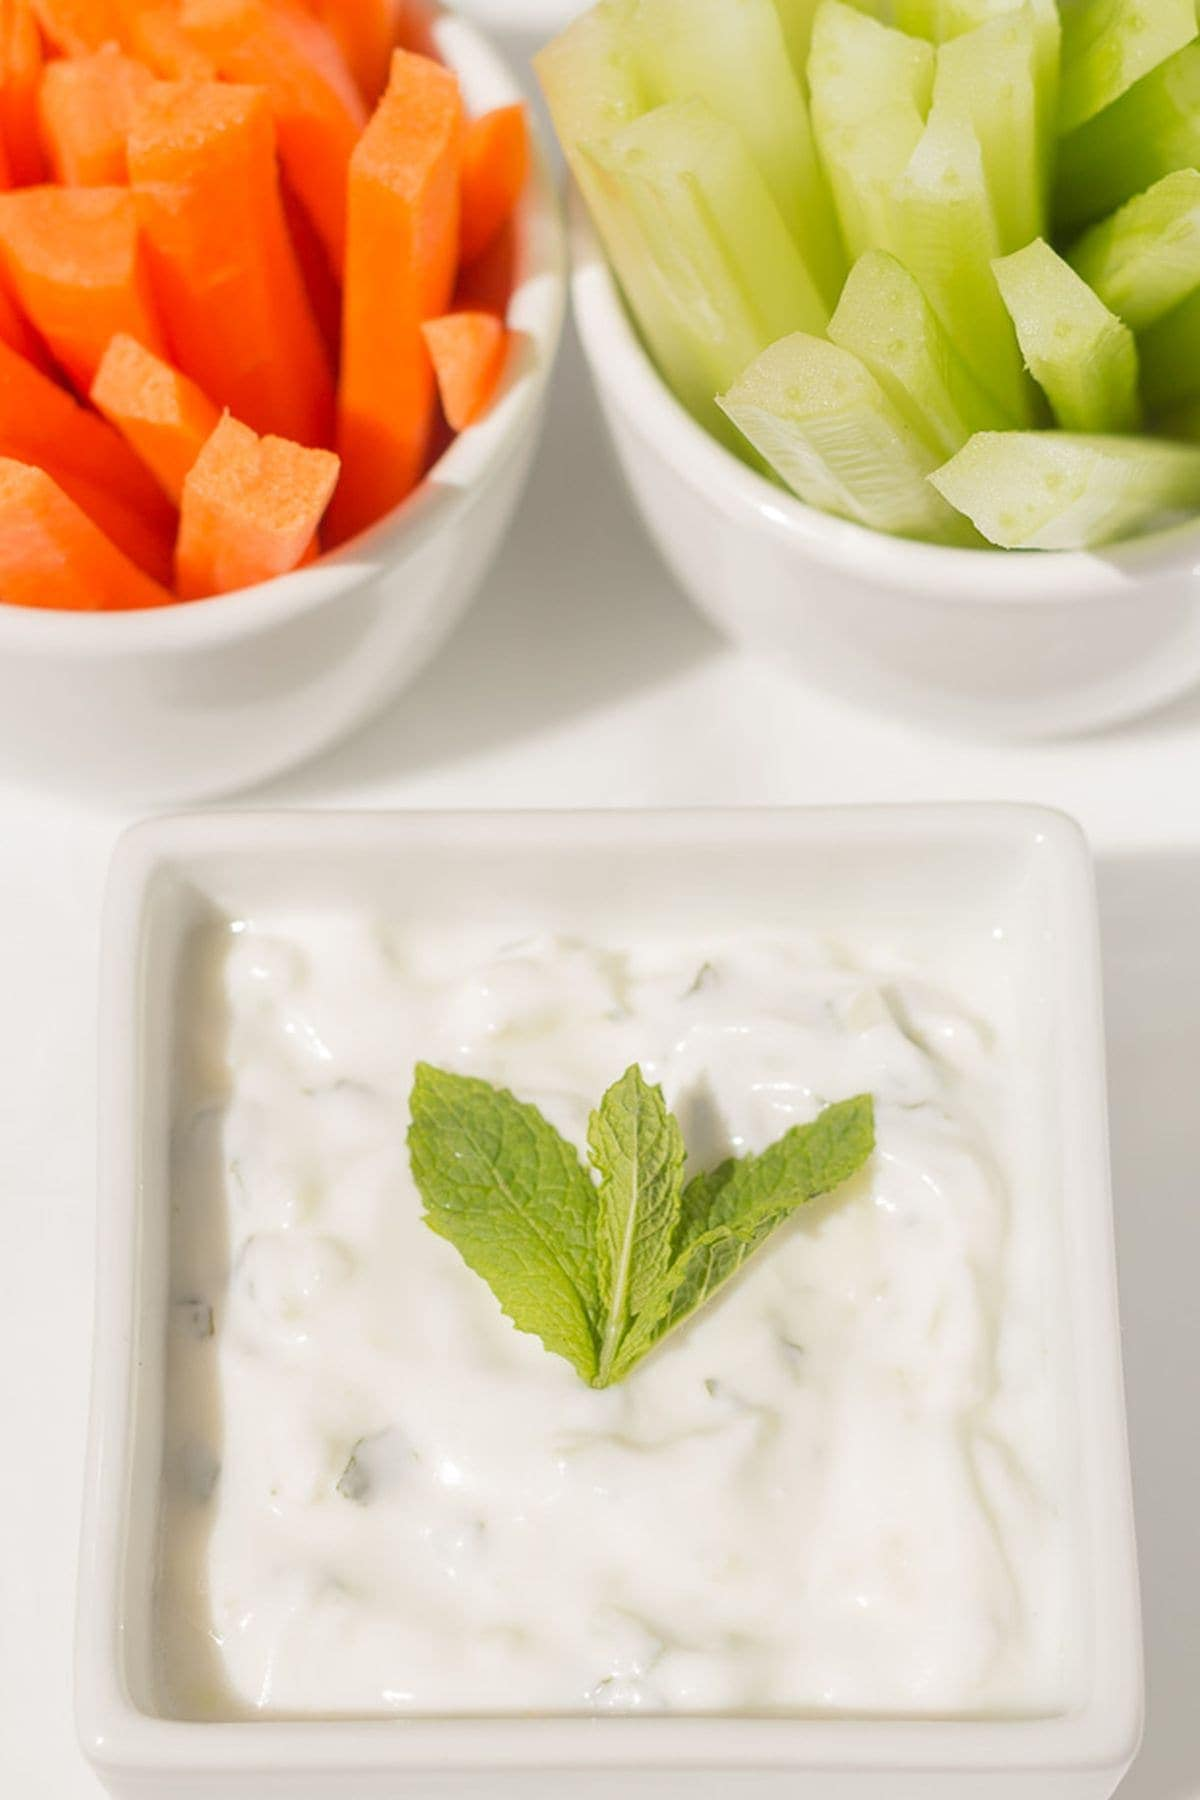 Low fat tzatziki dip in a small square serving dish with a sprig of mint leaves on top and crudities in the background.